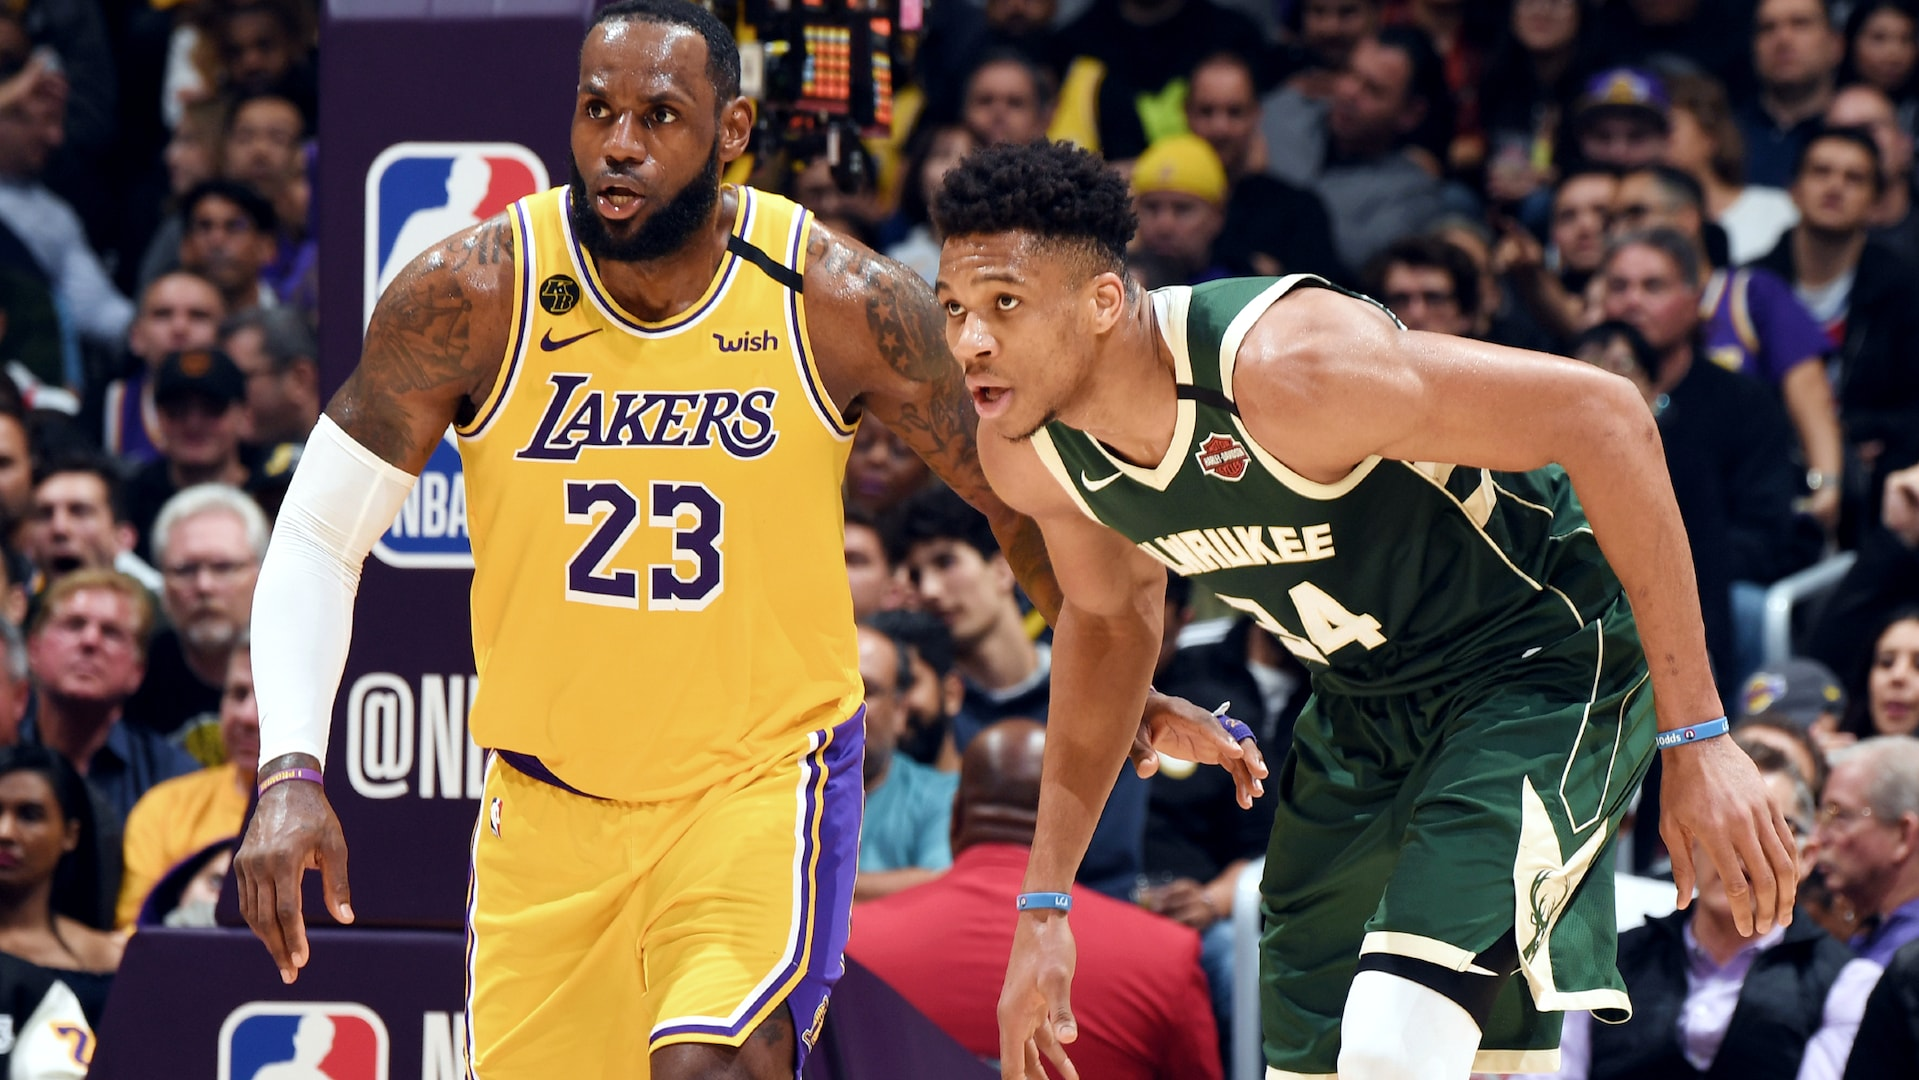 Giannis Antetokounmpo, LeBron James unanimously selected to 2019-20 All-NBA First Team